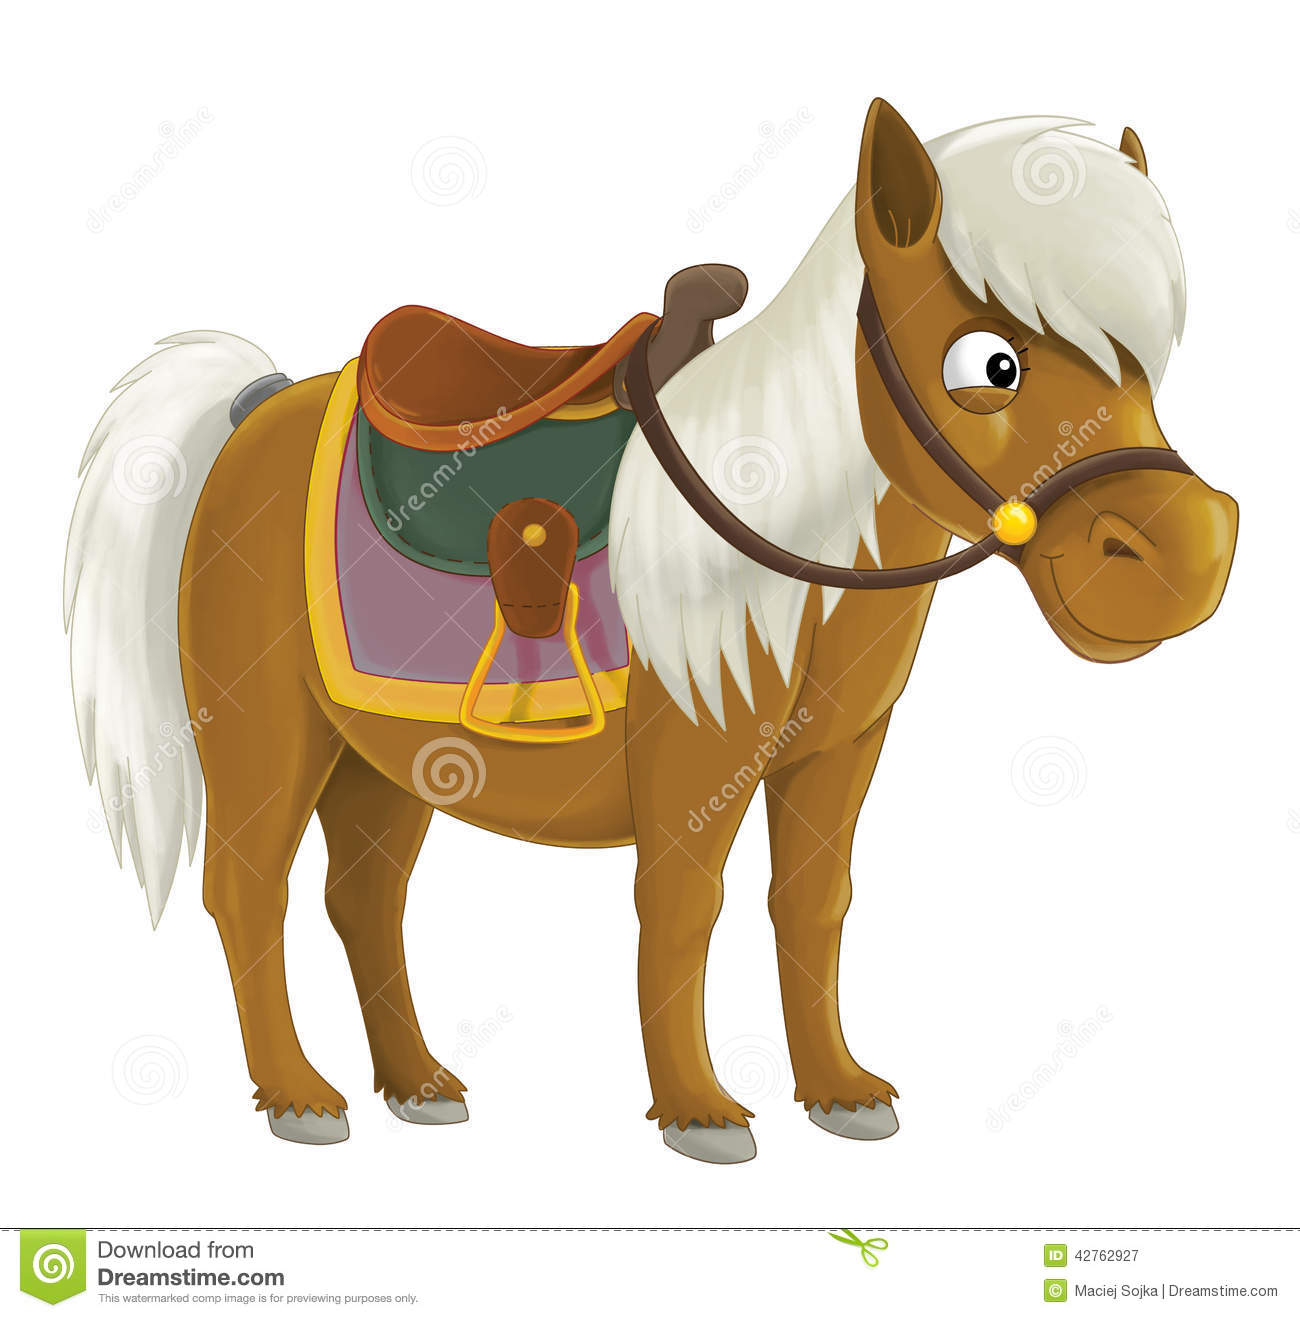 Cartoon Cowboy Horse Illustration For The Children Stock